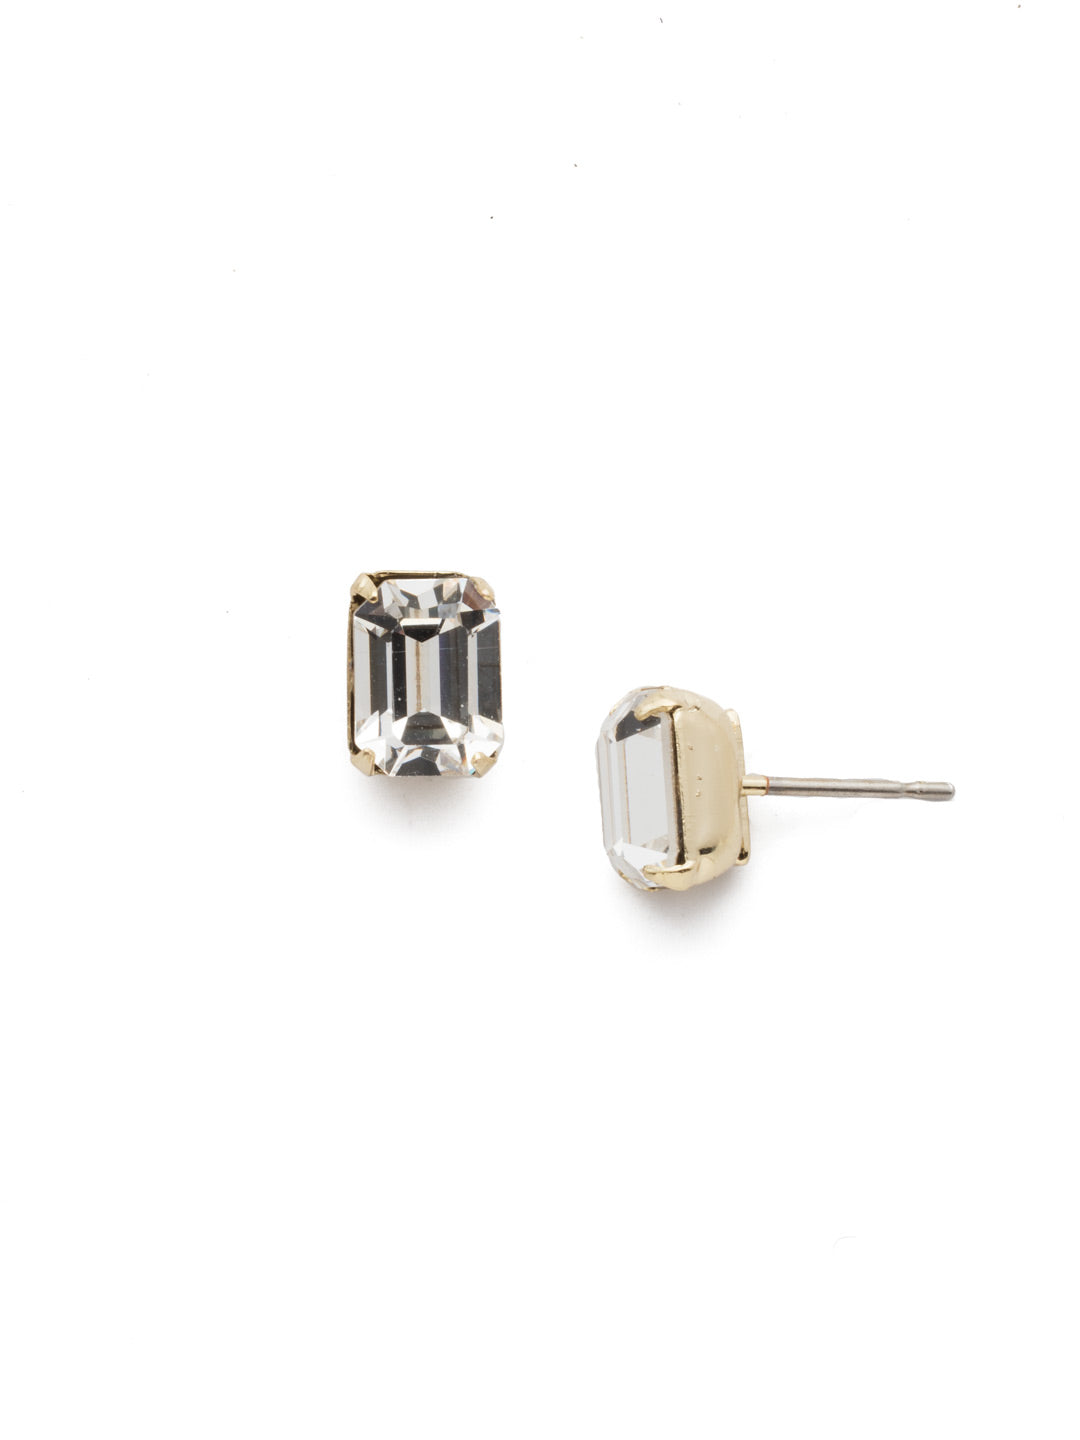 Mini Emerald Cut Stud Earring - Sorrelli Essentials - EBY42BGCRY